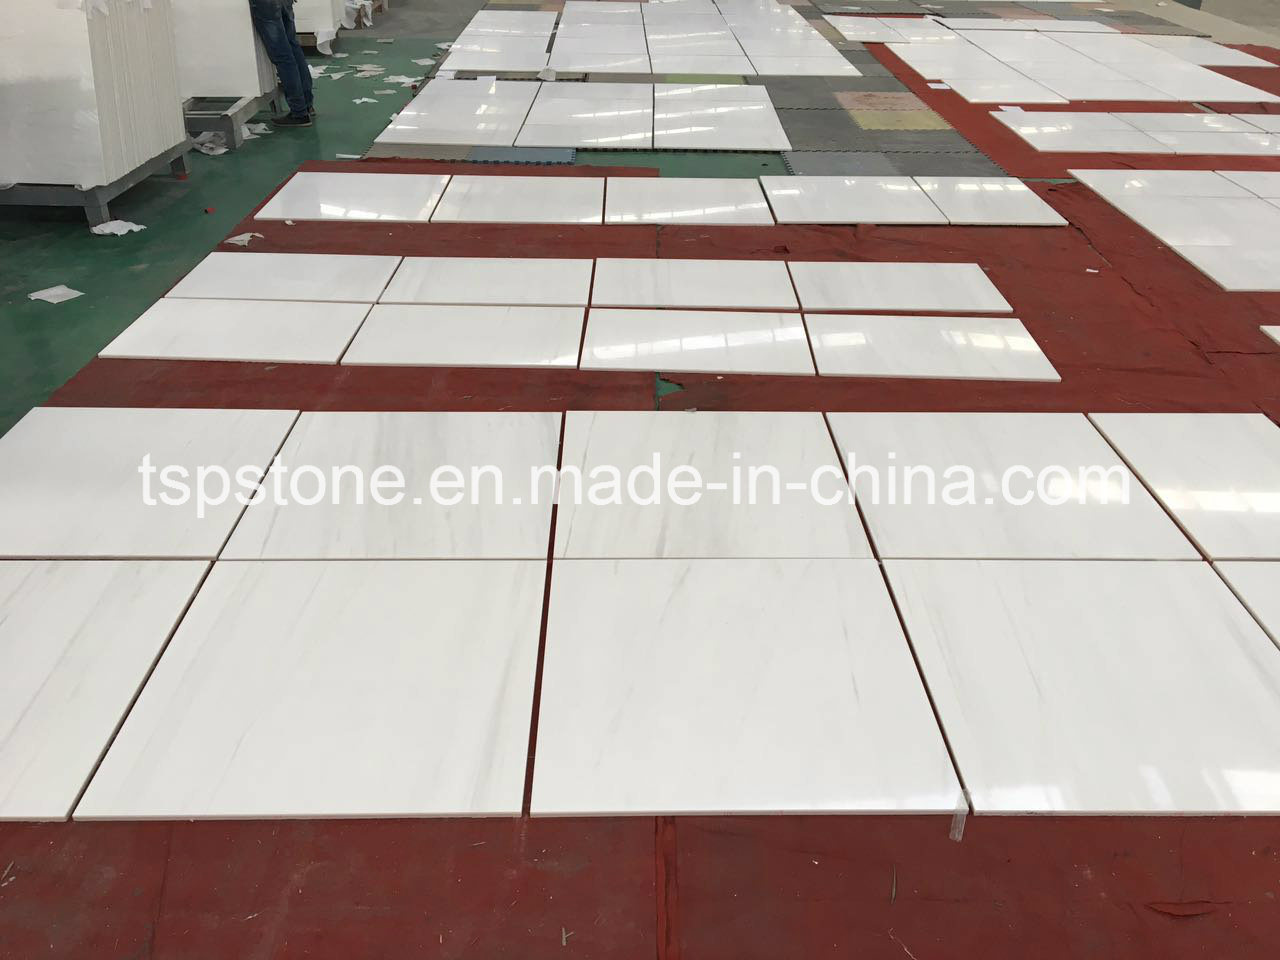 China Waterjet Marblegranitequartztravertinesandstone Flooring